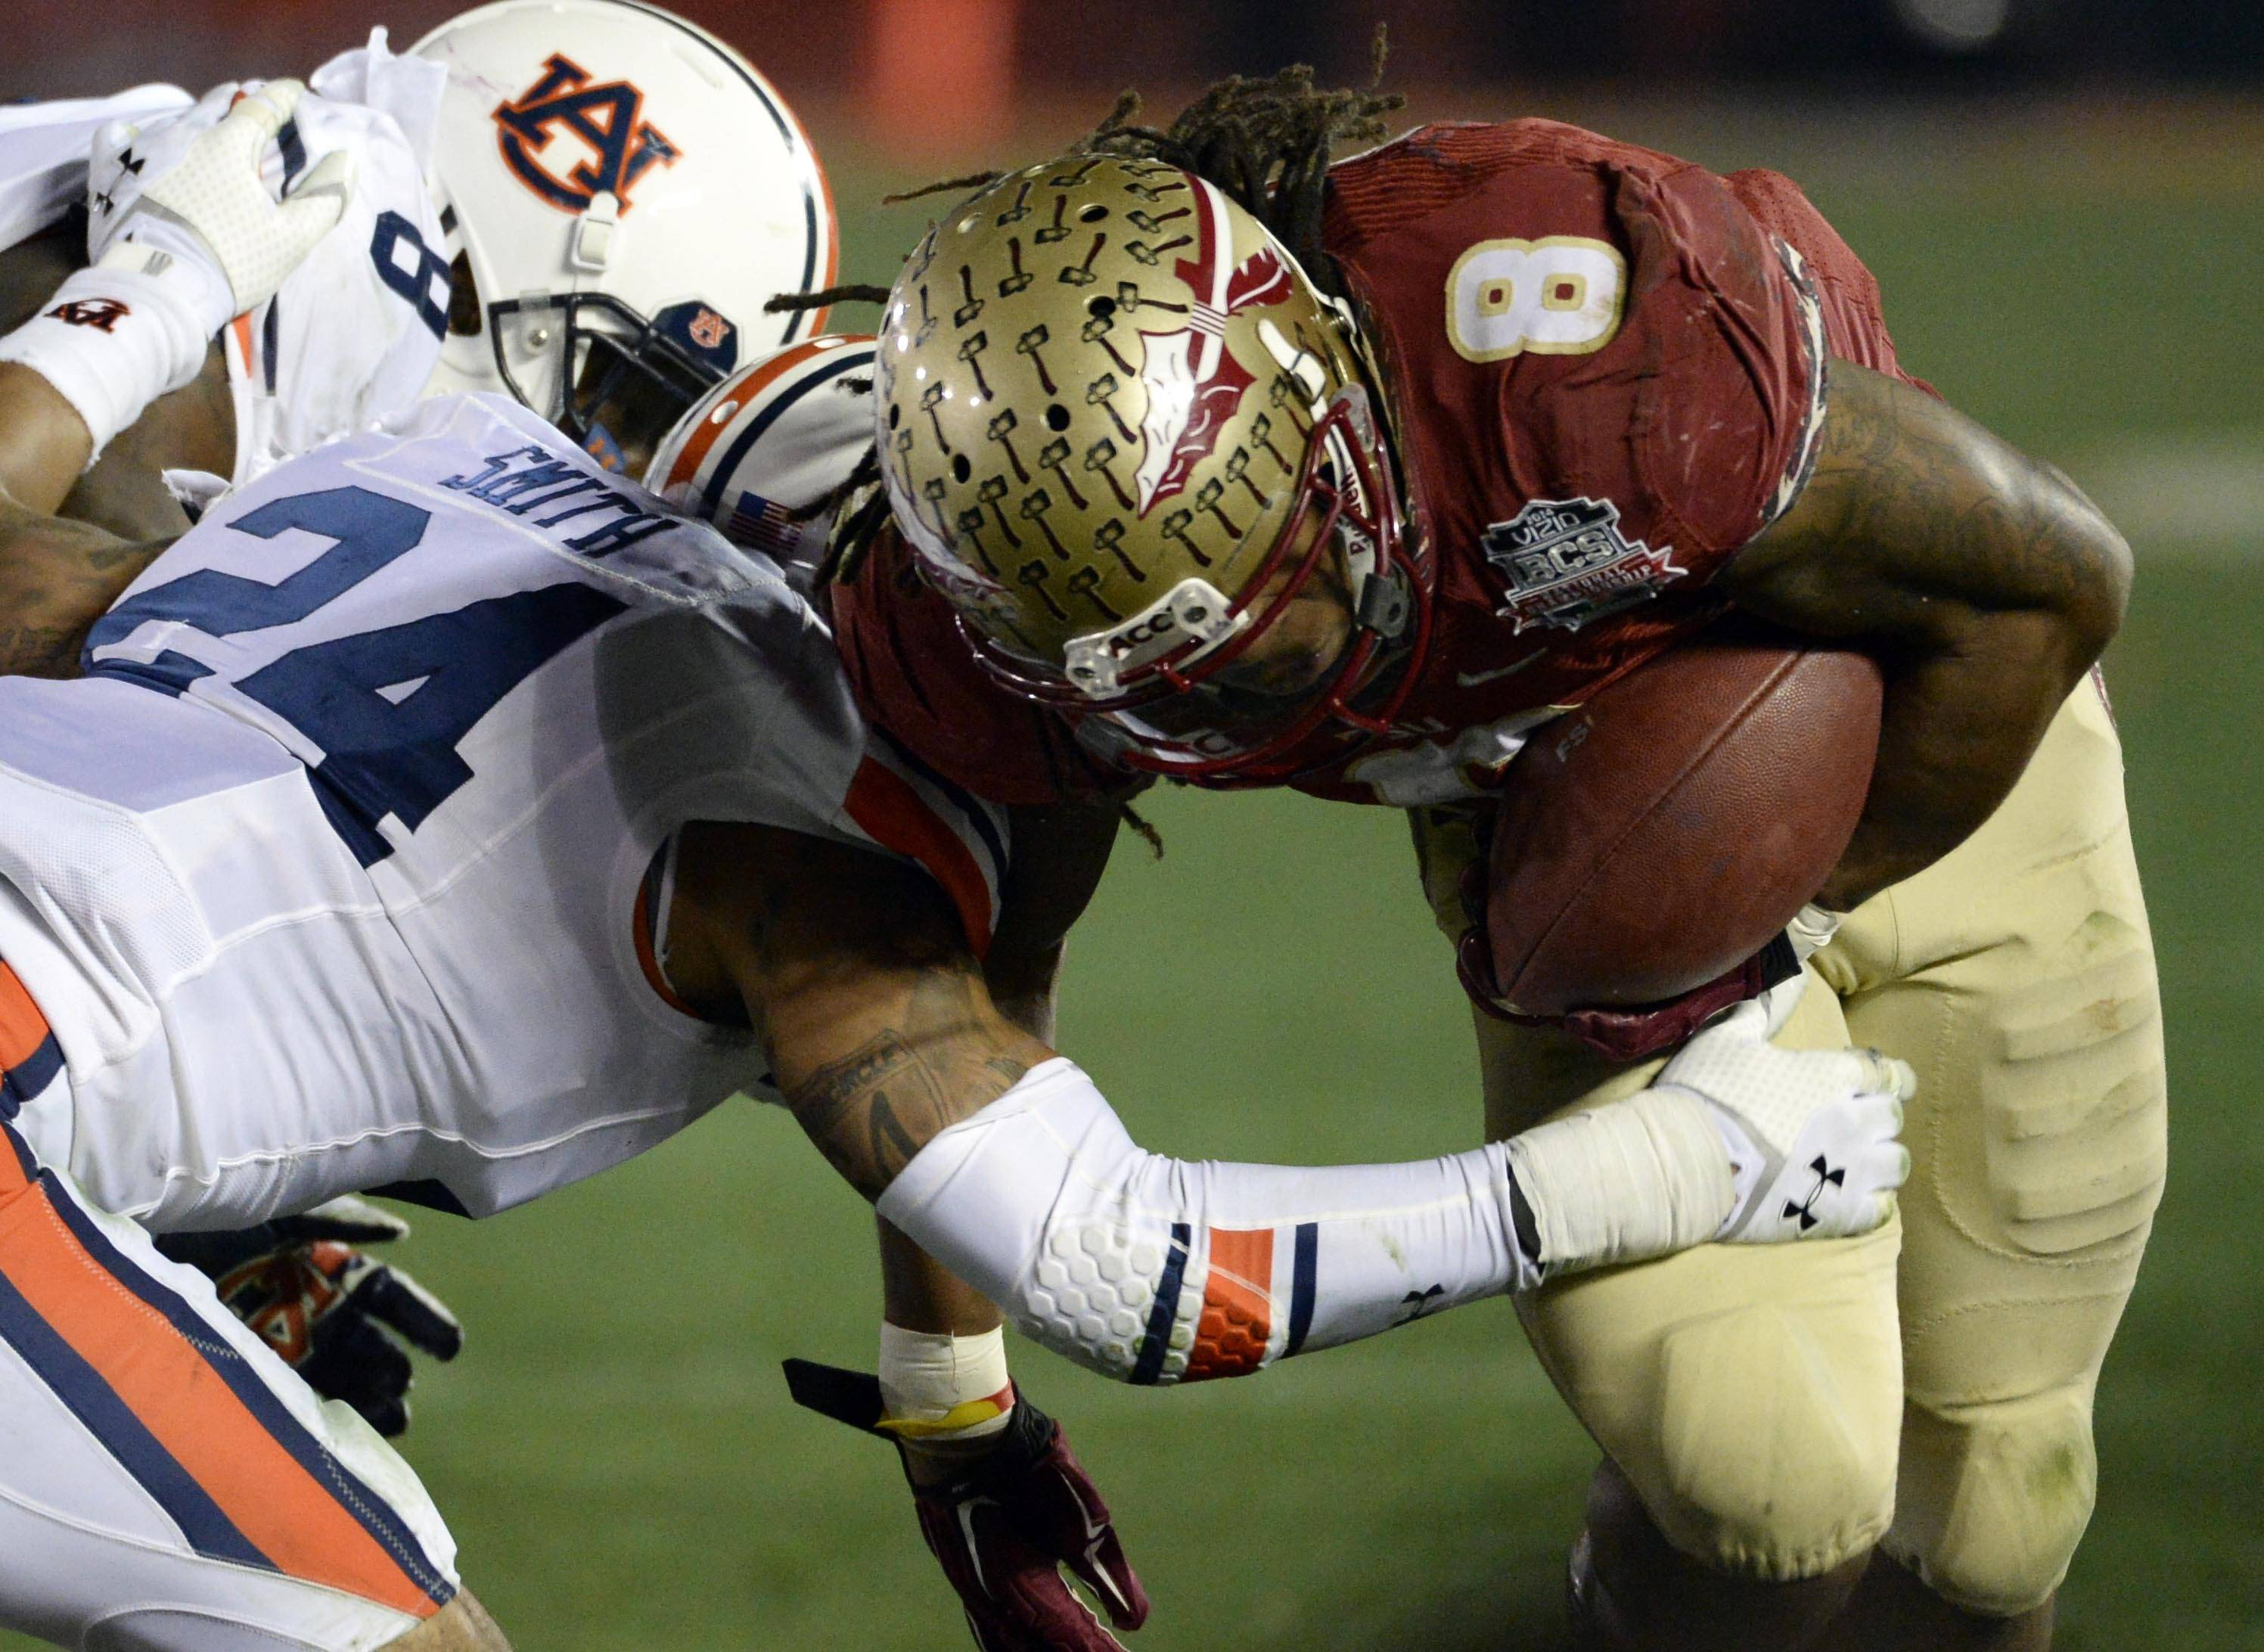 Jan 6, 2014; Pasadena, CA, USA; Auburn Tigers defensive back Ryan Smith (24) forces Florida State Seminoles running back Devonta Freeman (8) out of bounds during the second half of the 2014 BCS National Championship game at the Rose Bowl.  Mandatory Credit: Richard Mackson-USA TODAY Sports